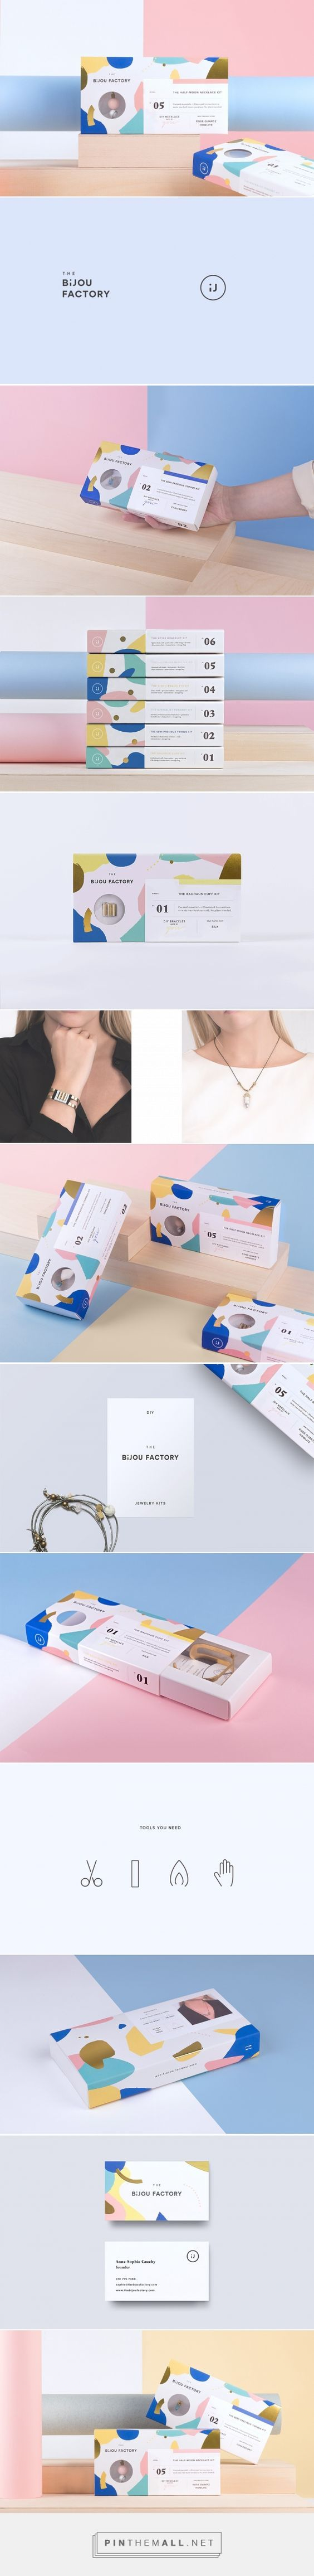 The Bijou Factory Jewelry Packaging by Phoenix the Creative Studio | Fivestar Branding Agency – Design and Branding Agency & Curated Inspiration Gallery